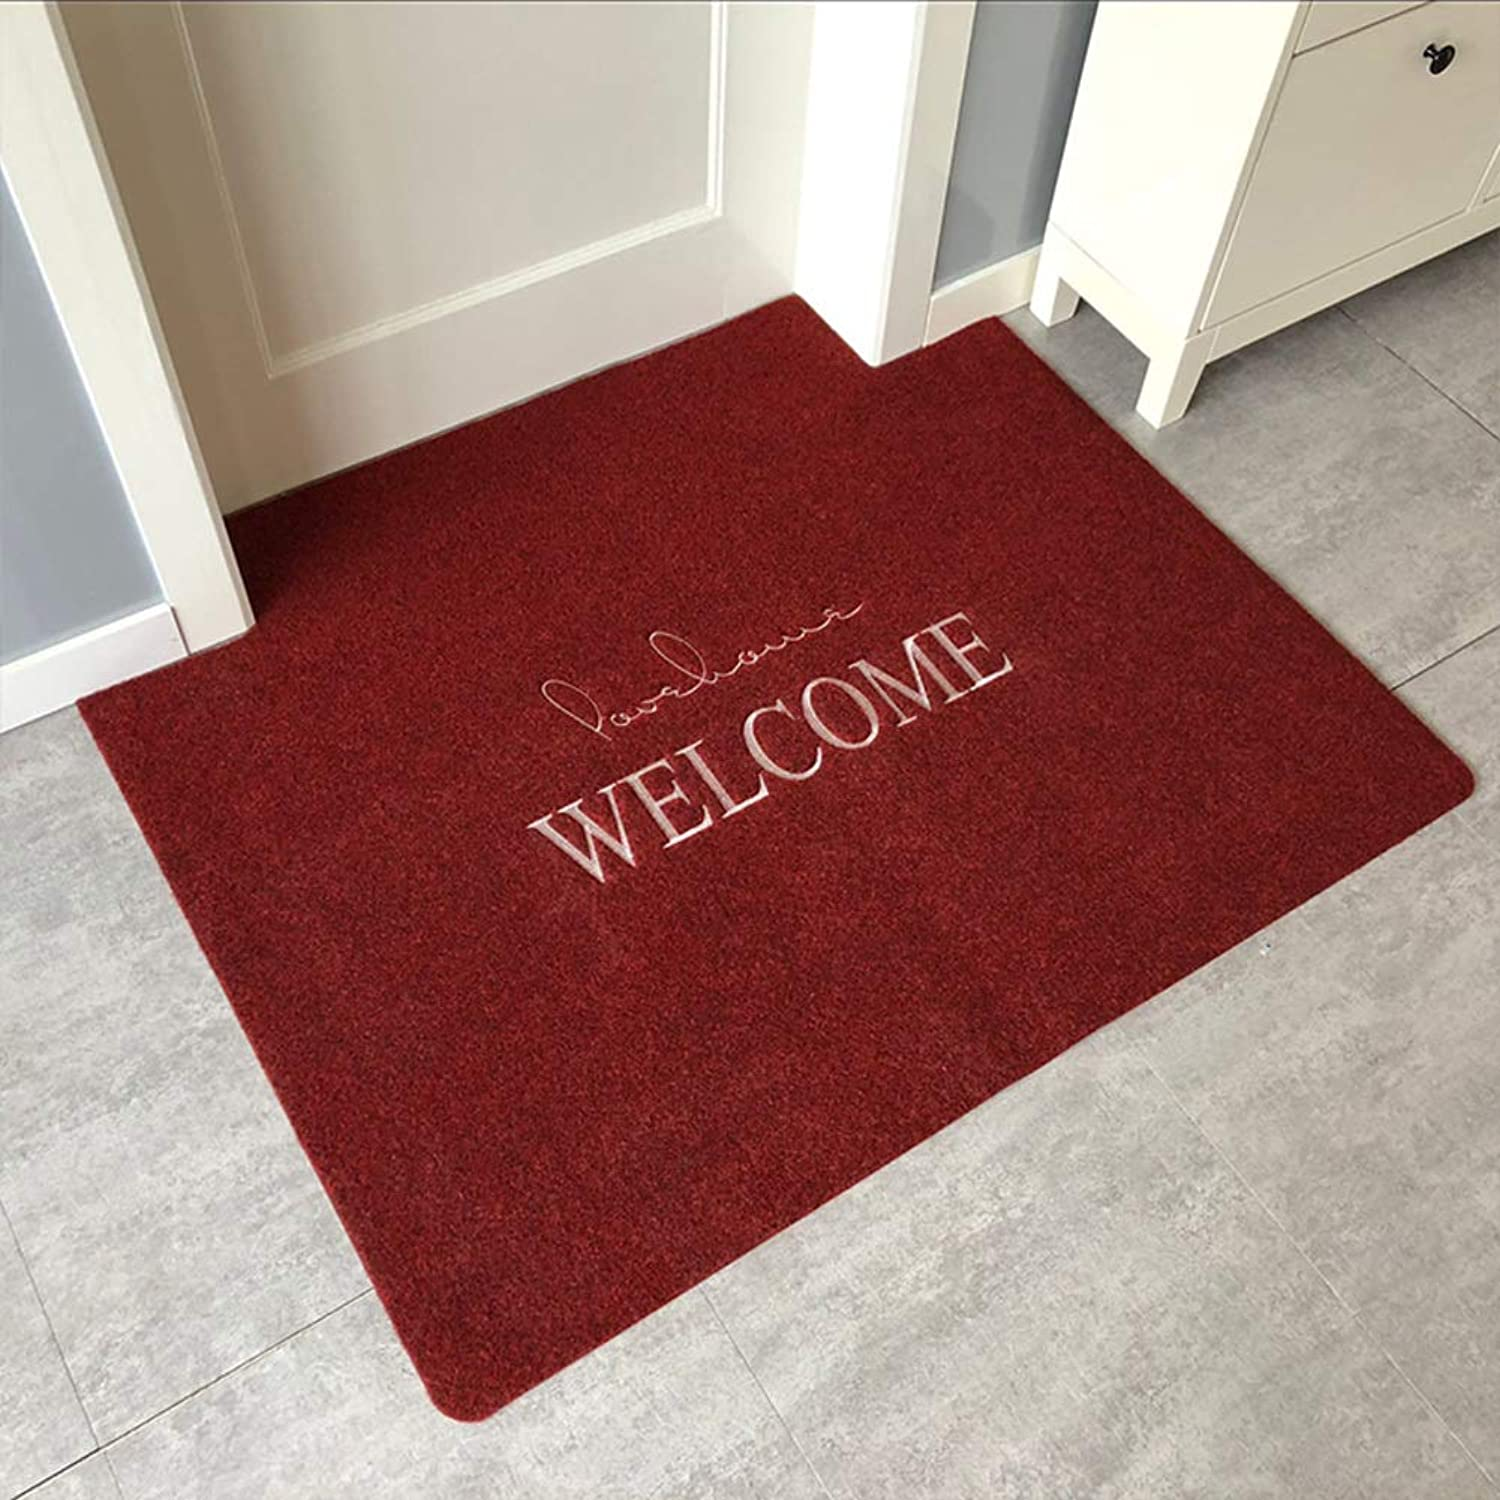 Door mat,Entrance Rug Front Entrance Door mat Non Slip Door mat Rectangle Rug Indoor Outdoor mats-red 60x90cm(24x35inch)